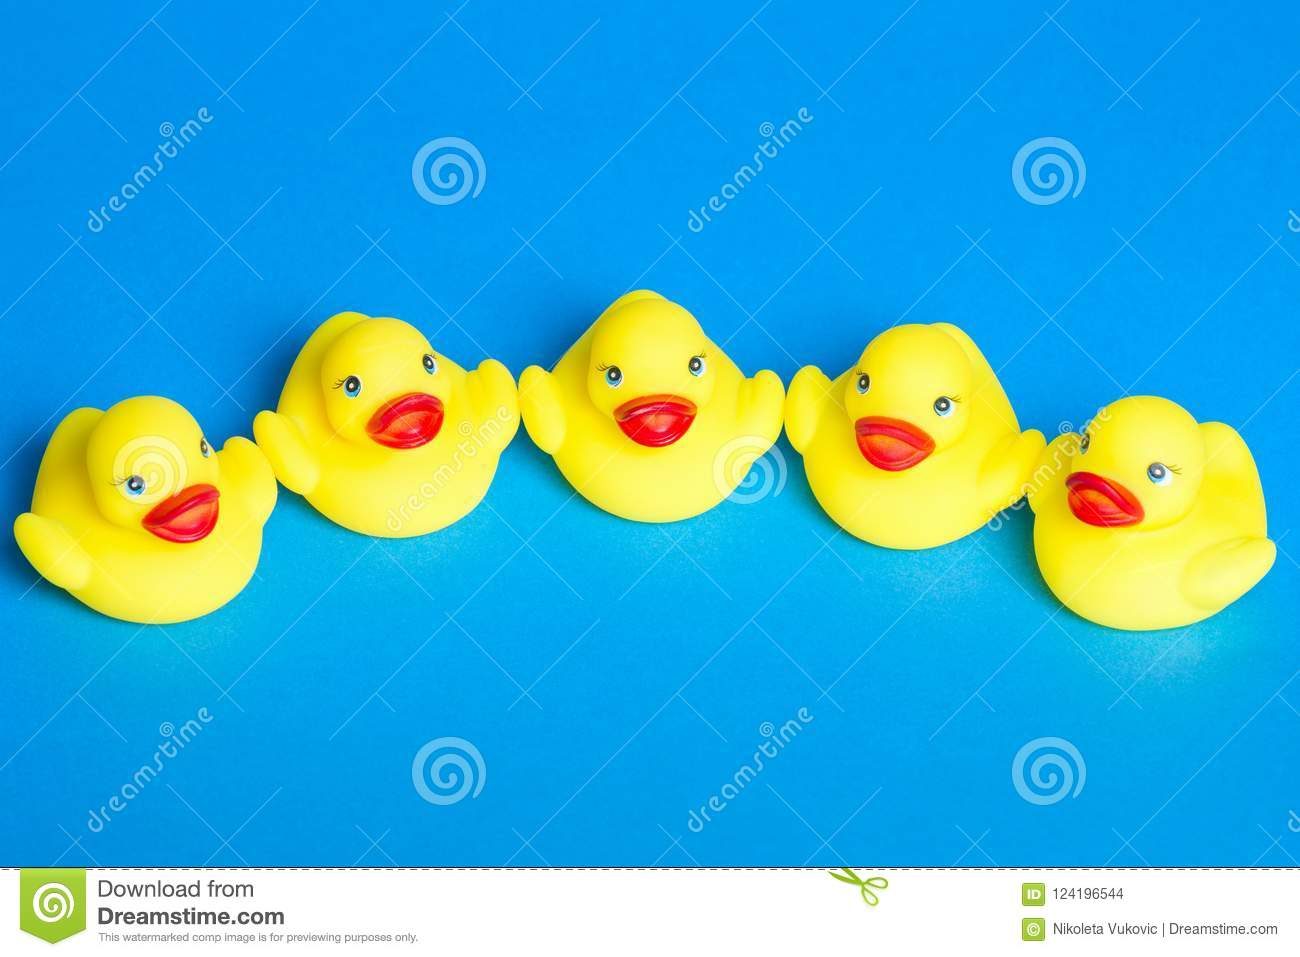 Five bath duck toys stock photo. Image of view, baby - 124196544